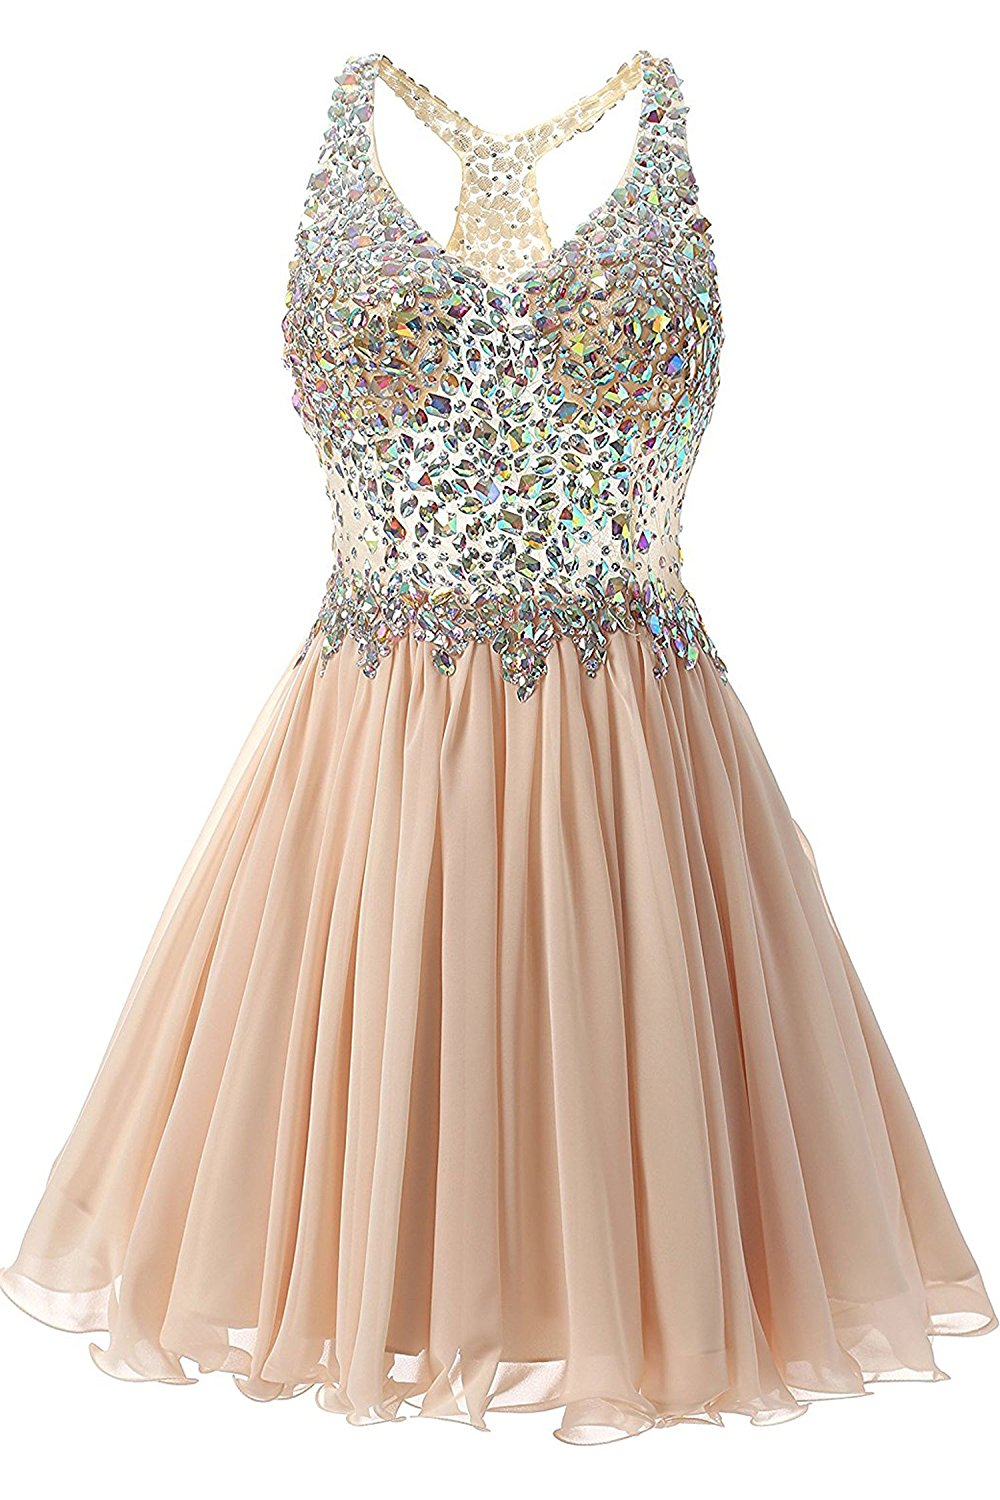 Champagne Short Cocktail Dress Open Back Party Prom Dress